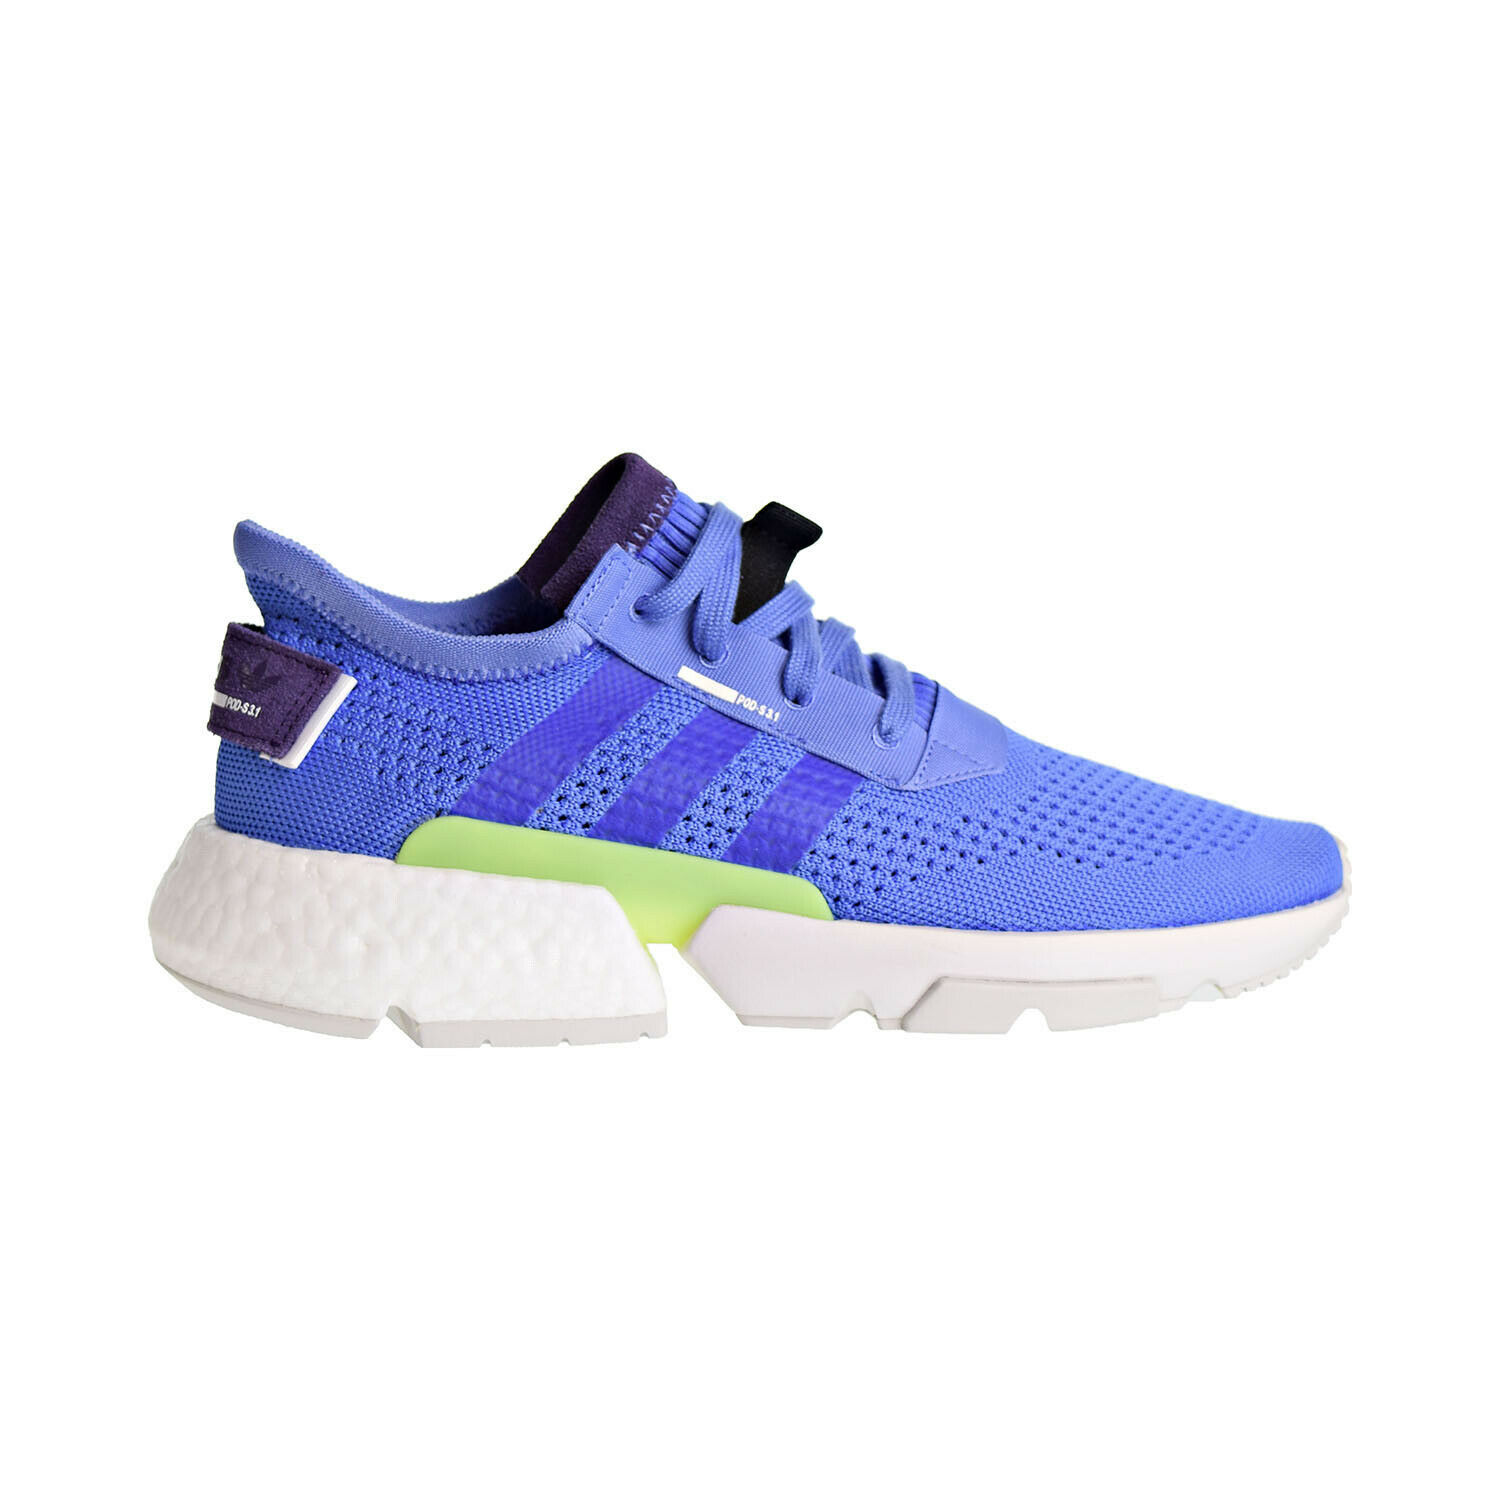 Adidas POD-S3.1 Men's shoes Real purplec Cloud White DB3539